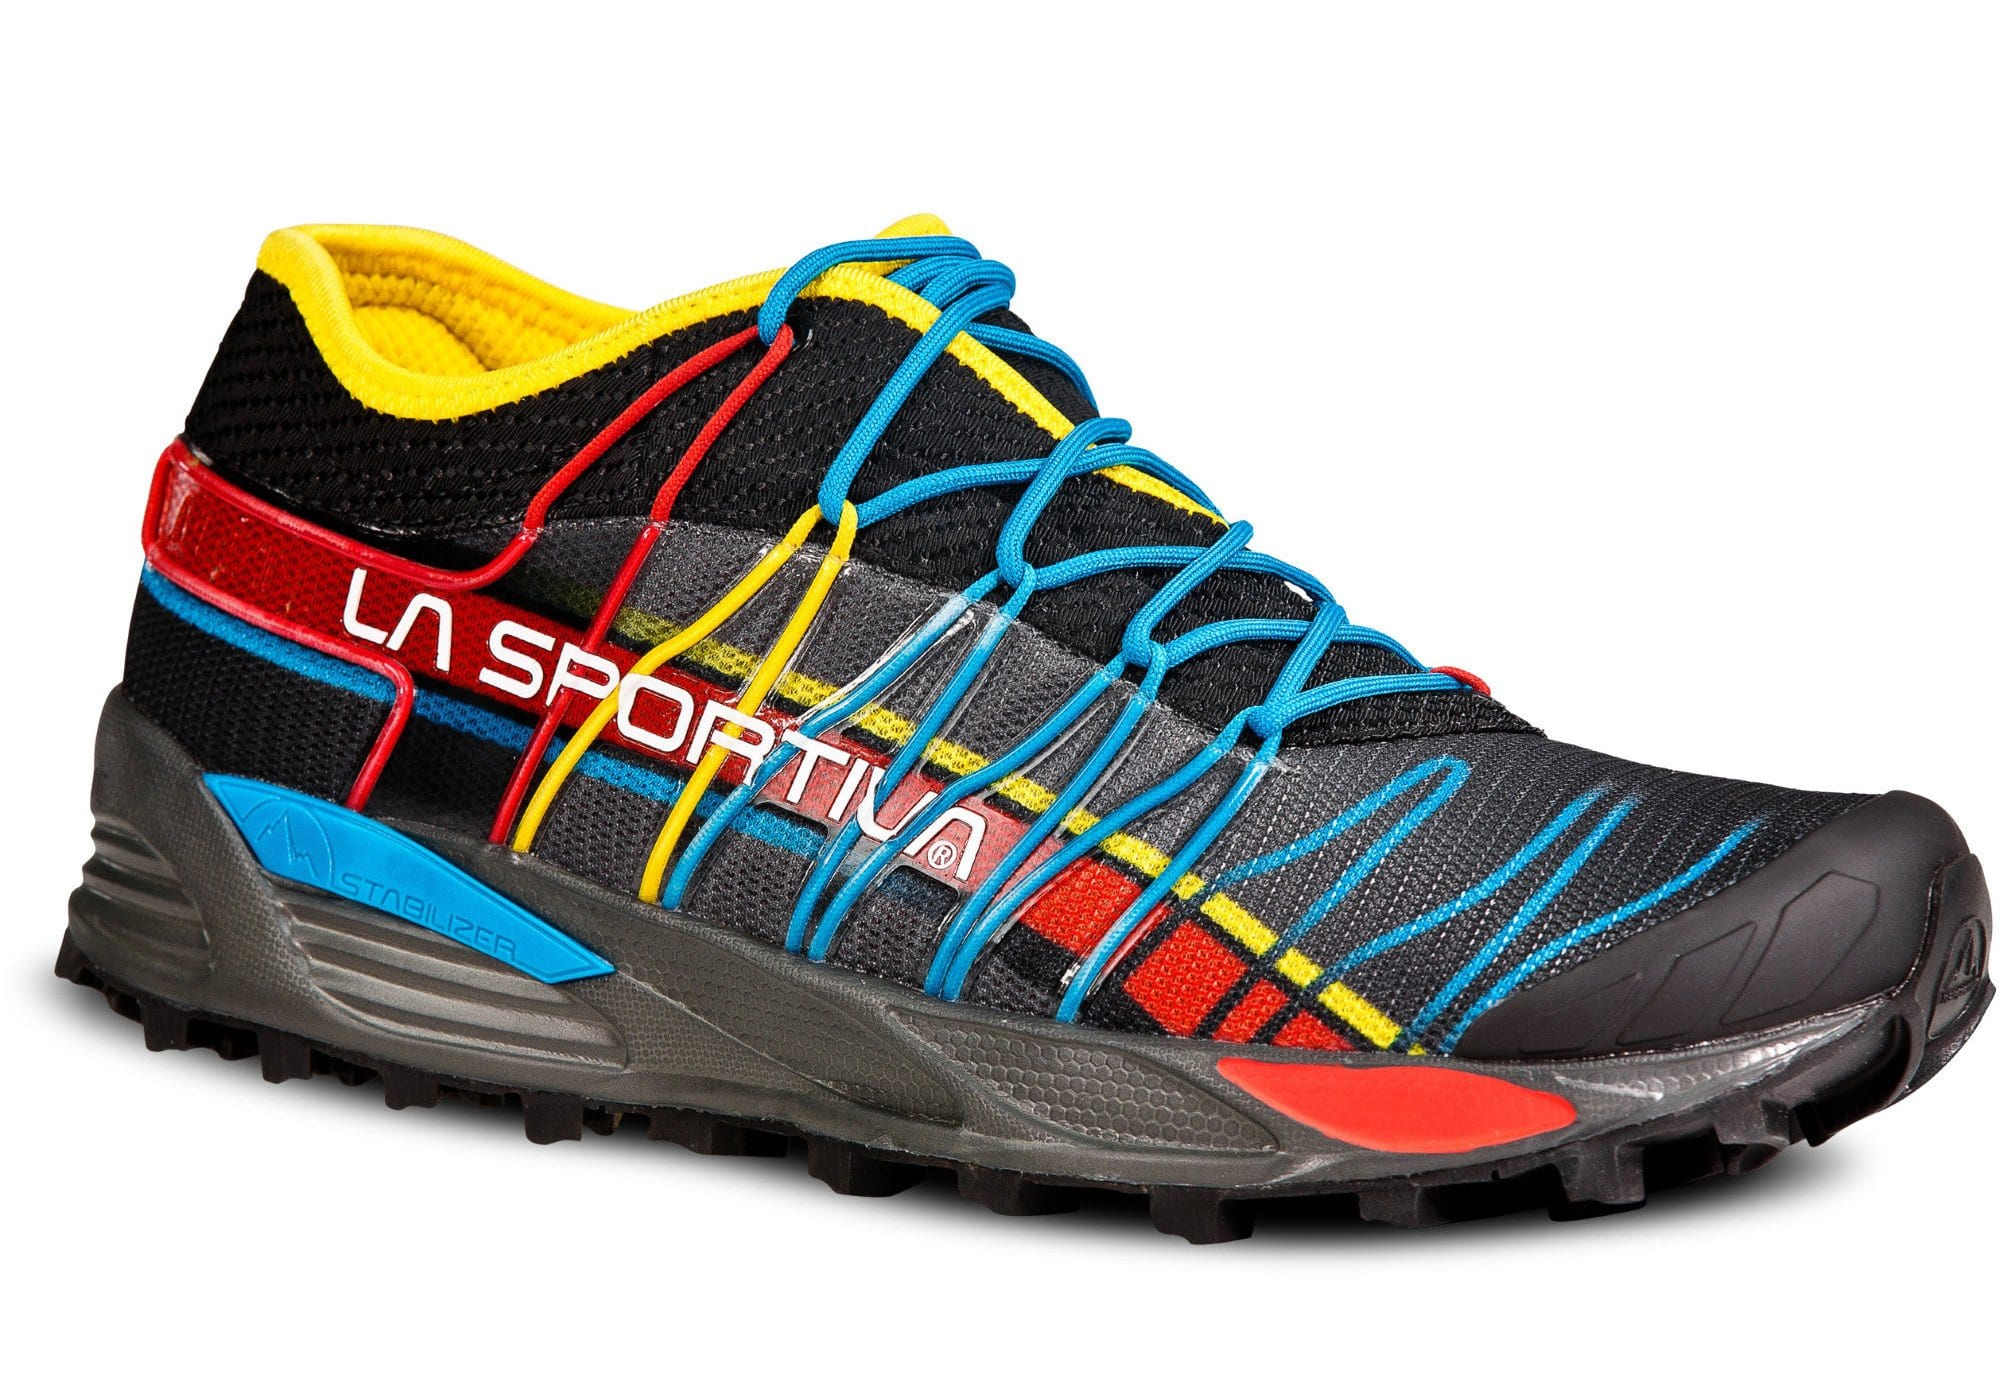 La Sportiva Mutant Trail Running Shoes